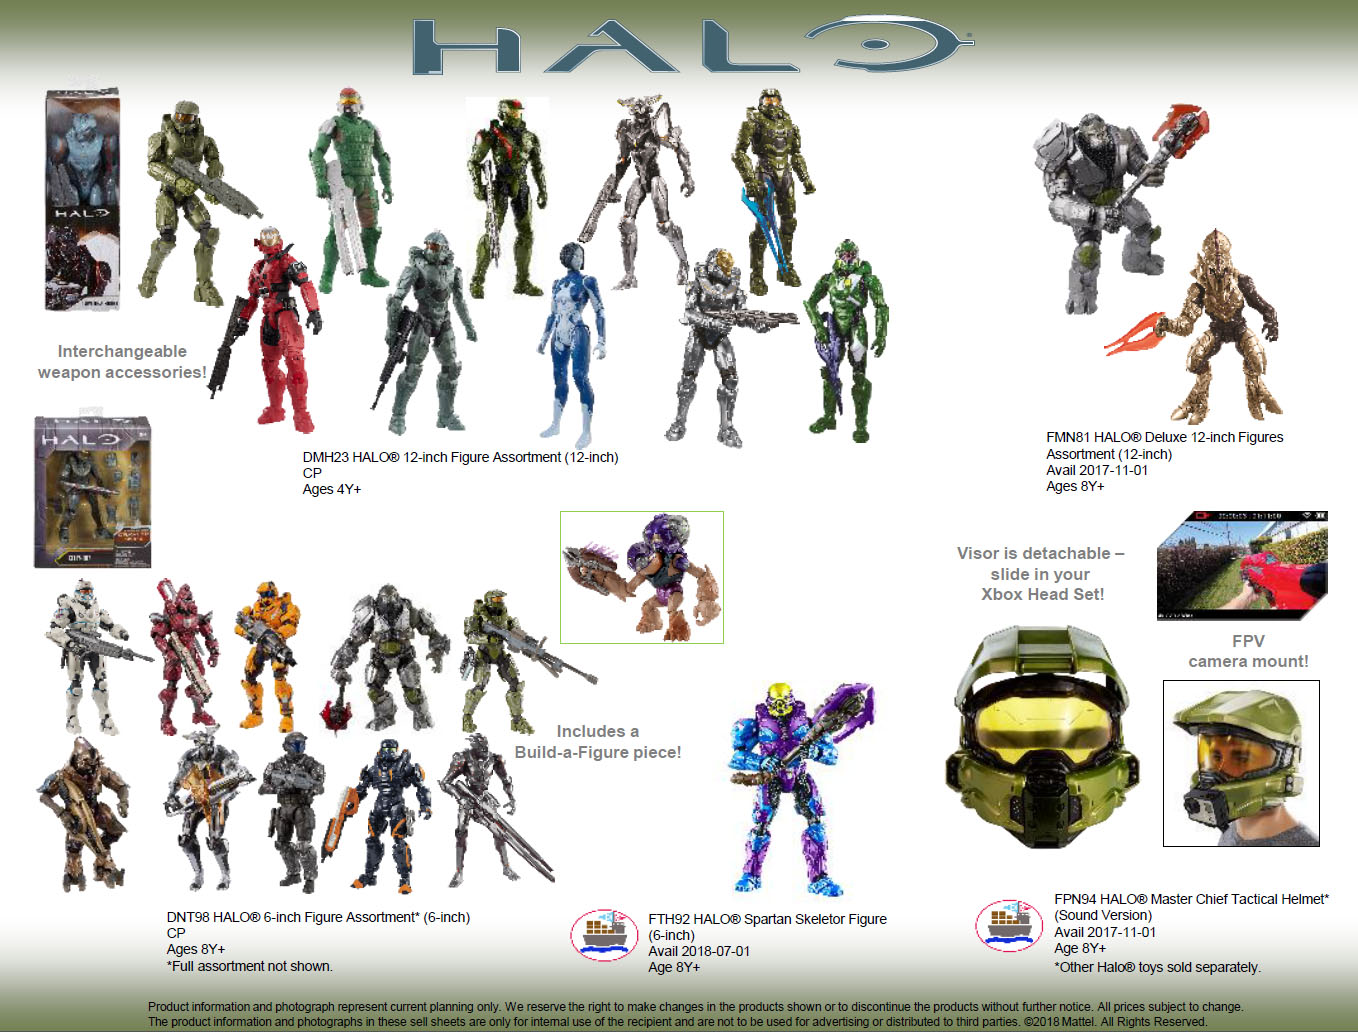 Mattel Halo Fall 2018 Releases Includes Spartan Skeletor